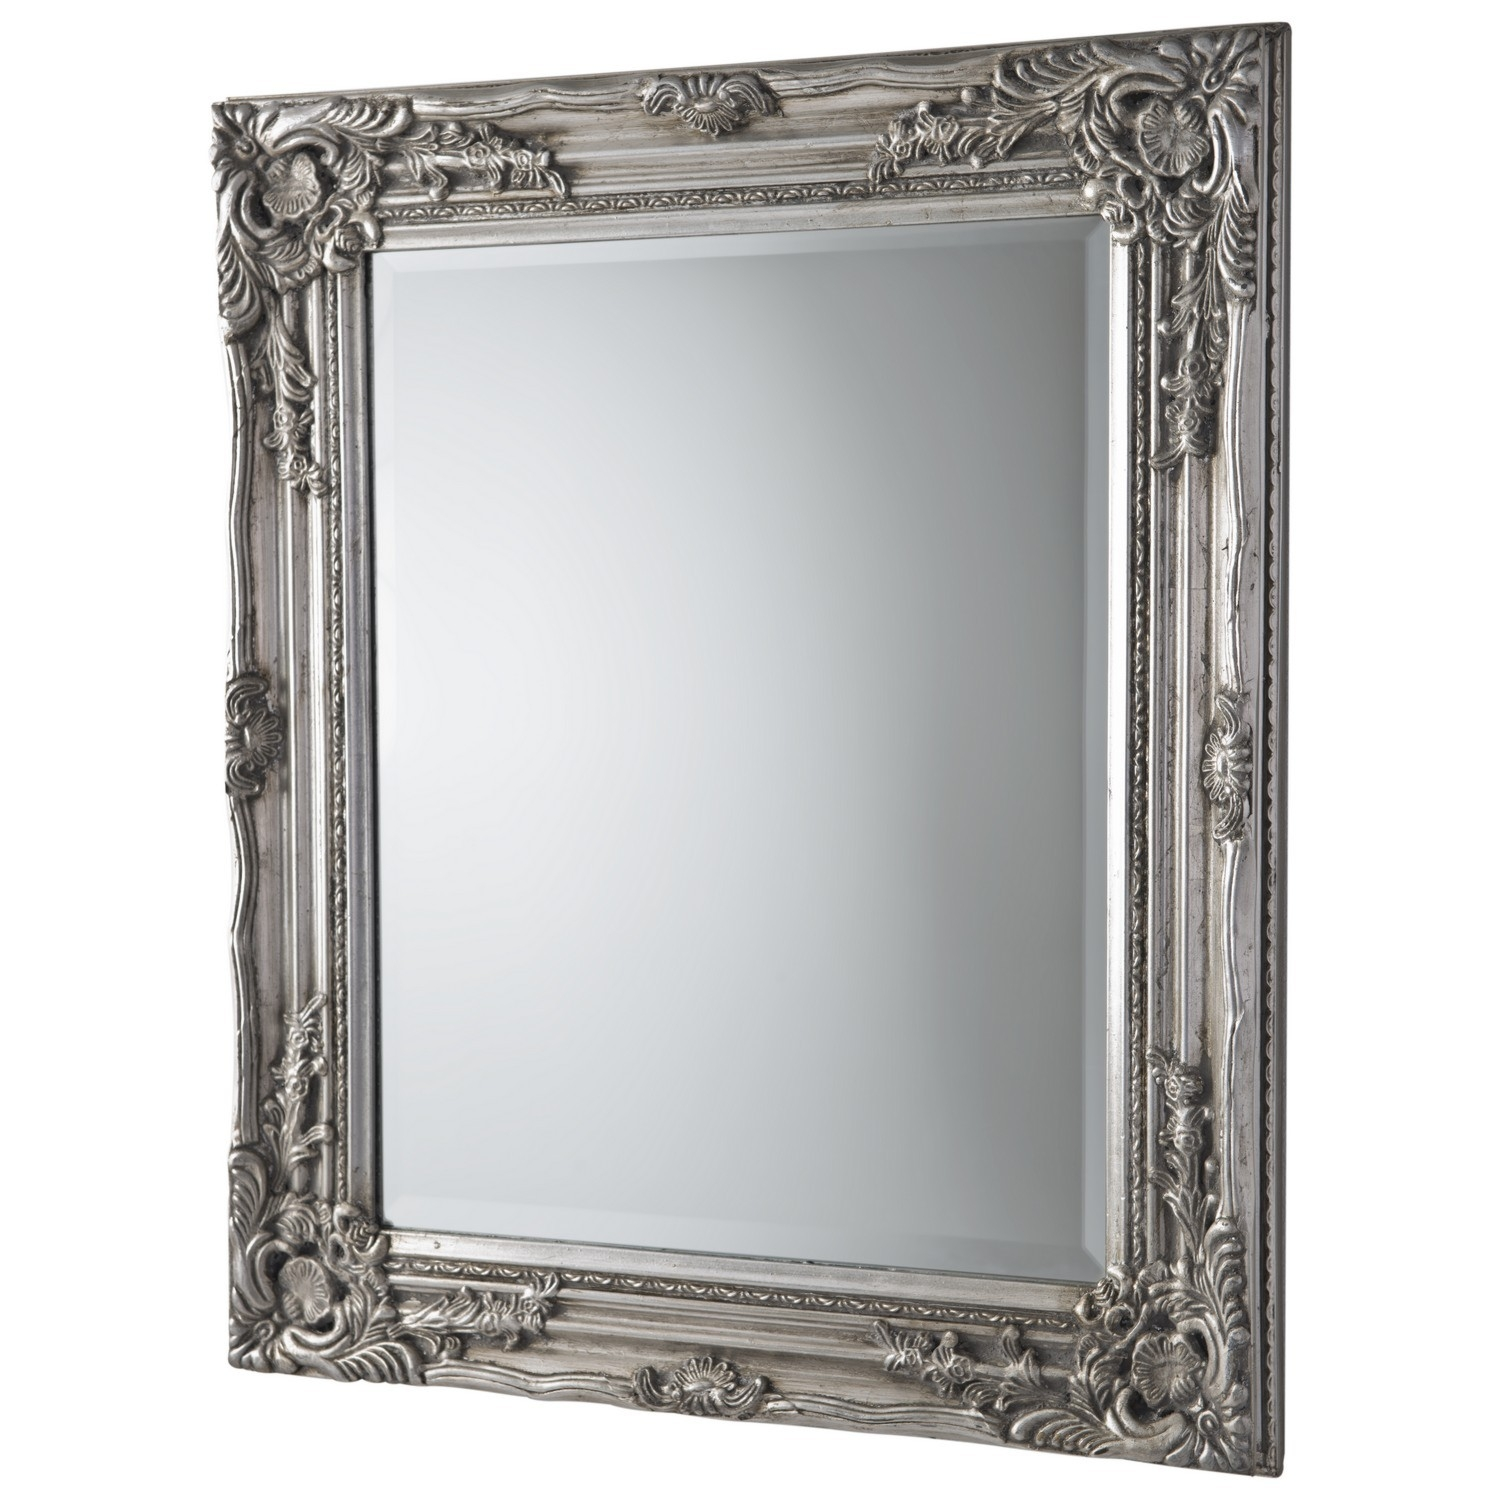 Featured Image of Silver Ornate Mirror